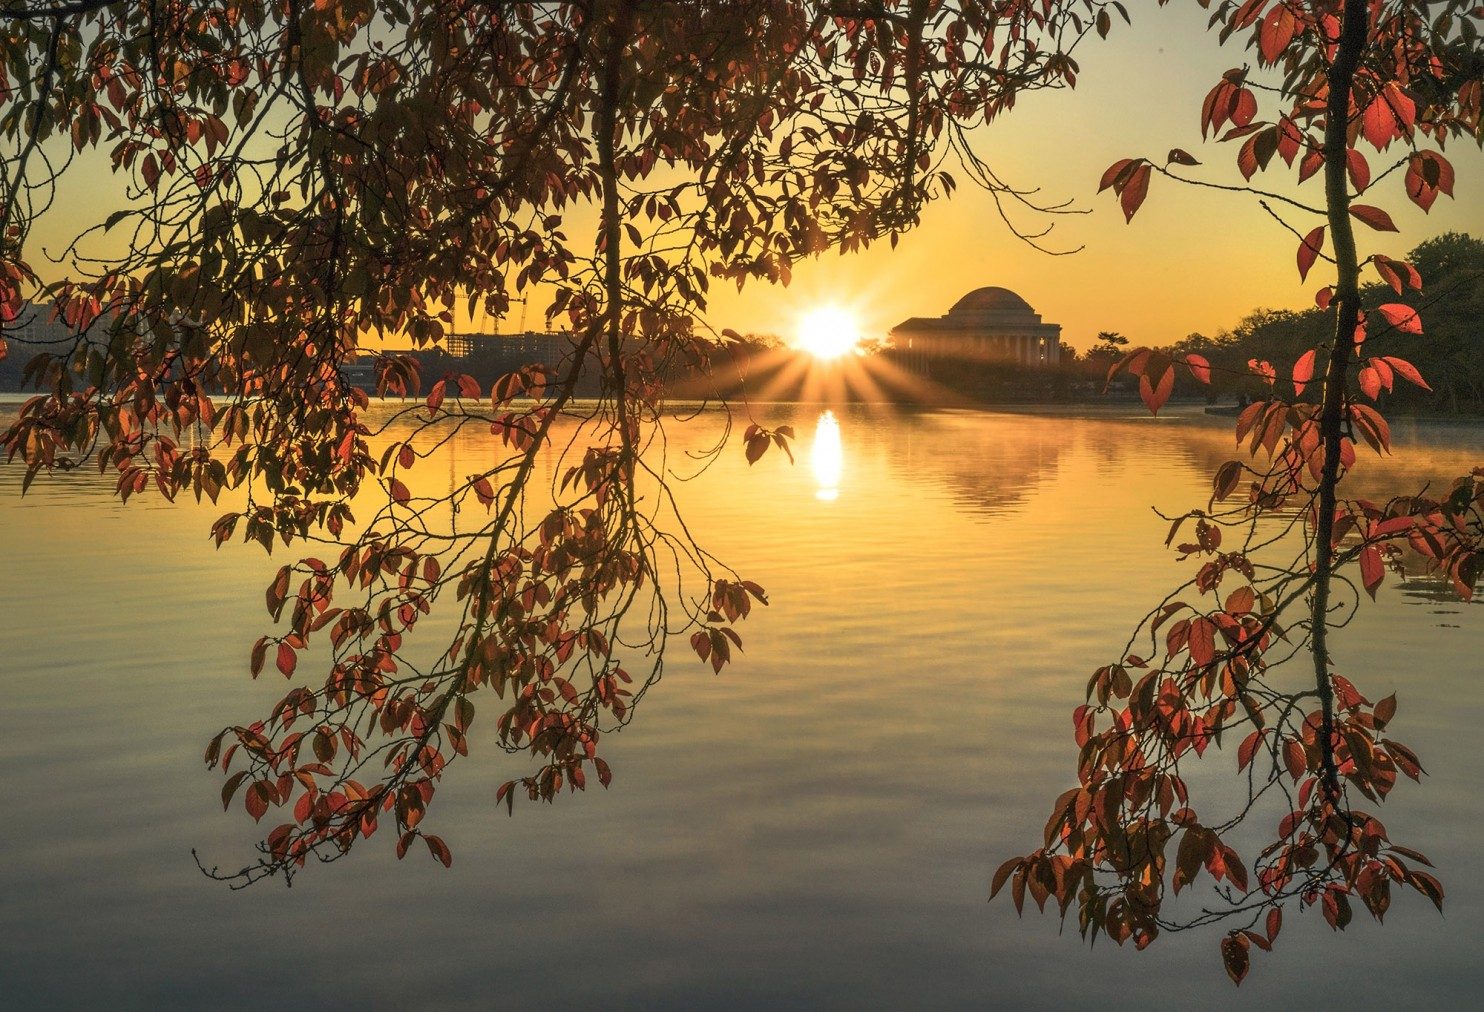 Autumn sunrise at the Tidal Basin with the Jefferson Memorial, November 13, 2016. Photo credit: Kevin Ambrose